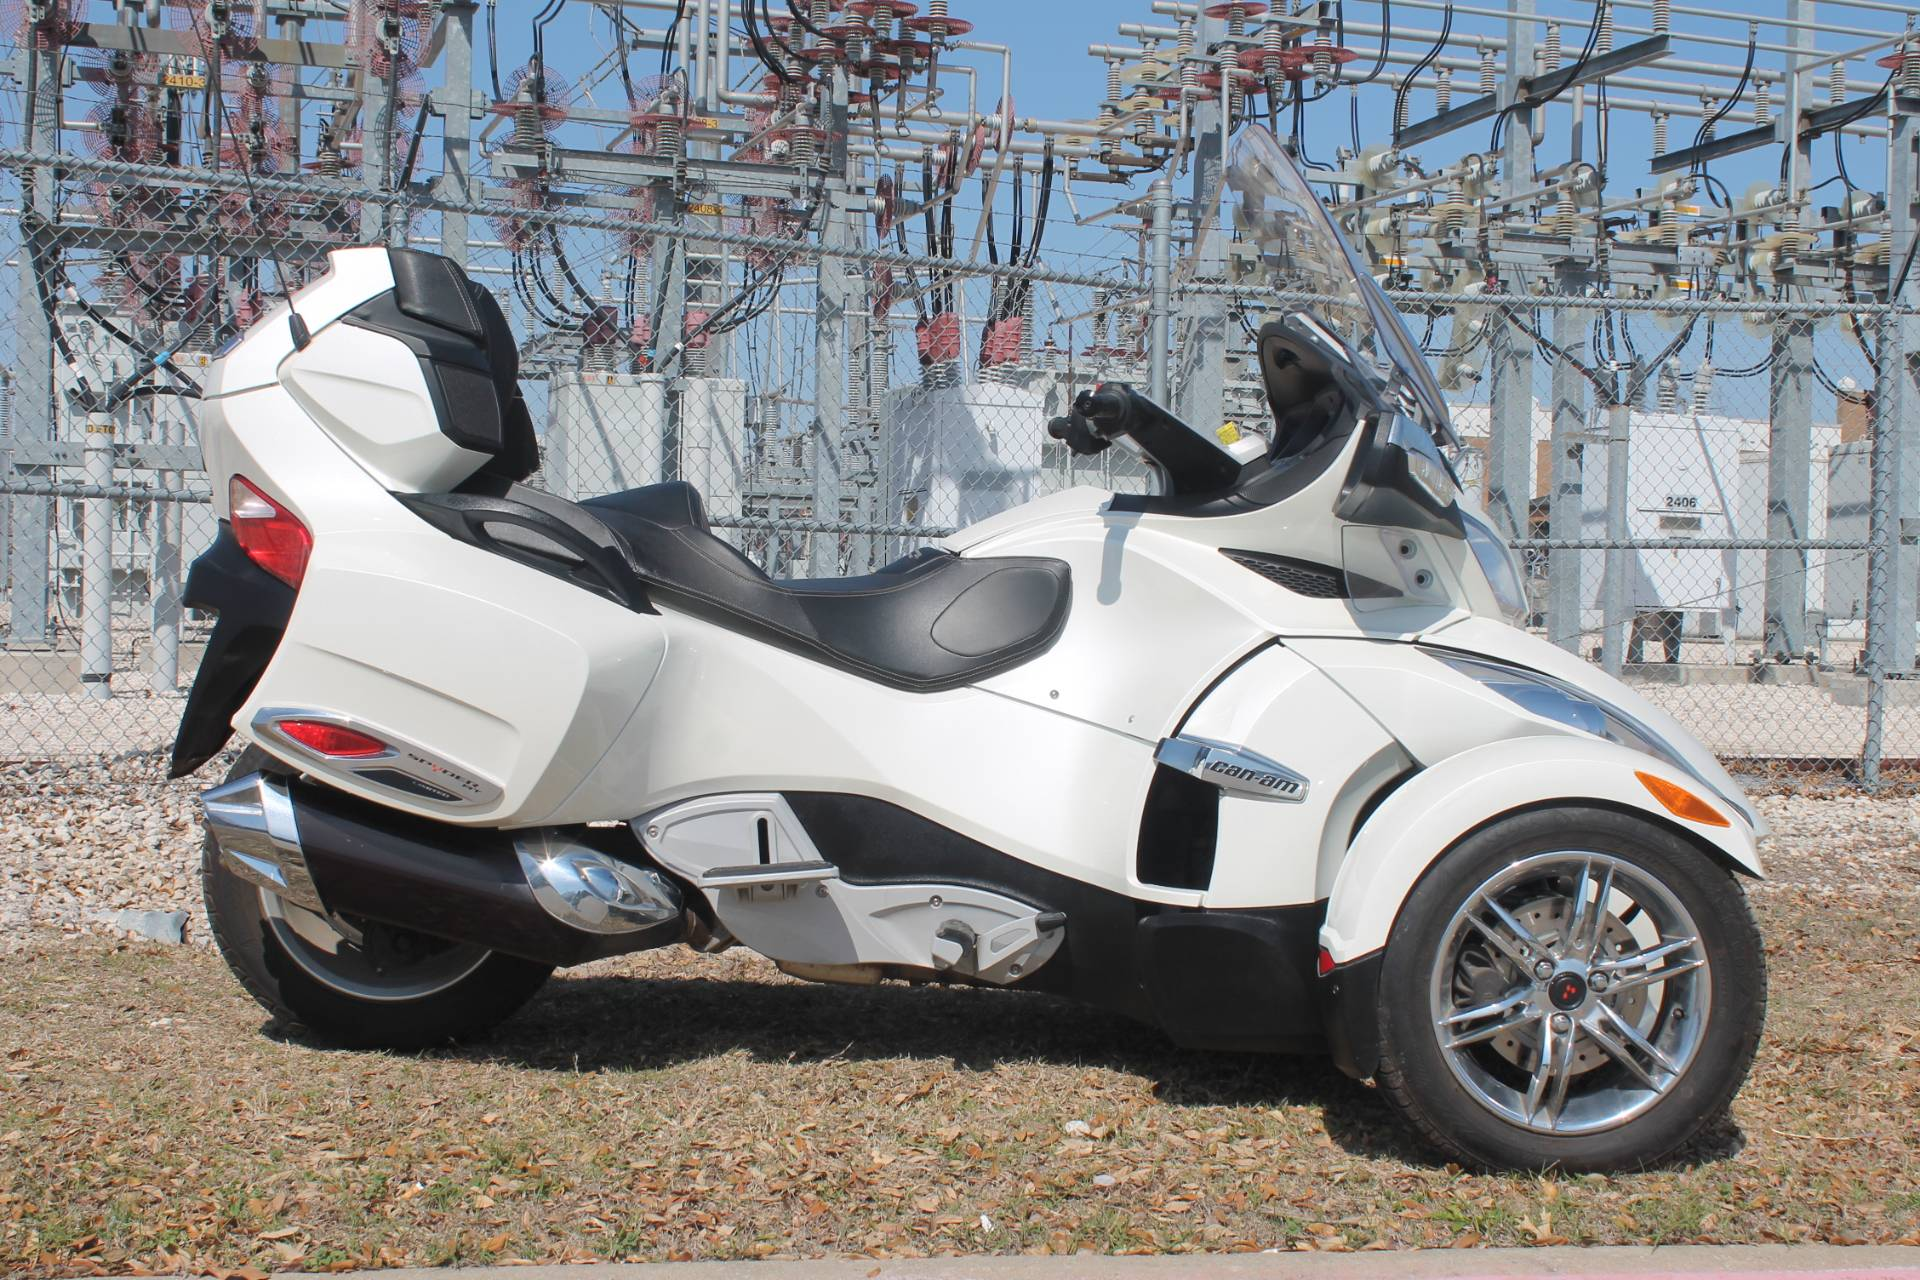 2012 Can-Am RT Limited for sale 132066